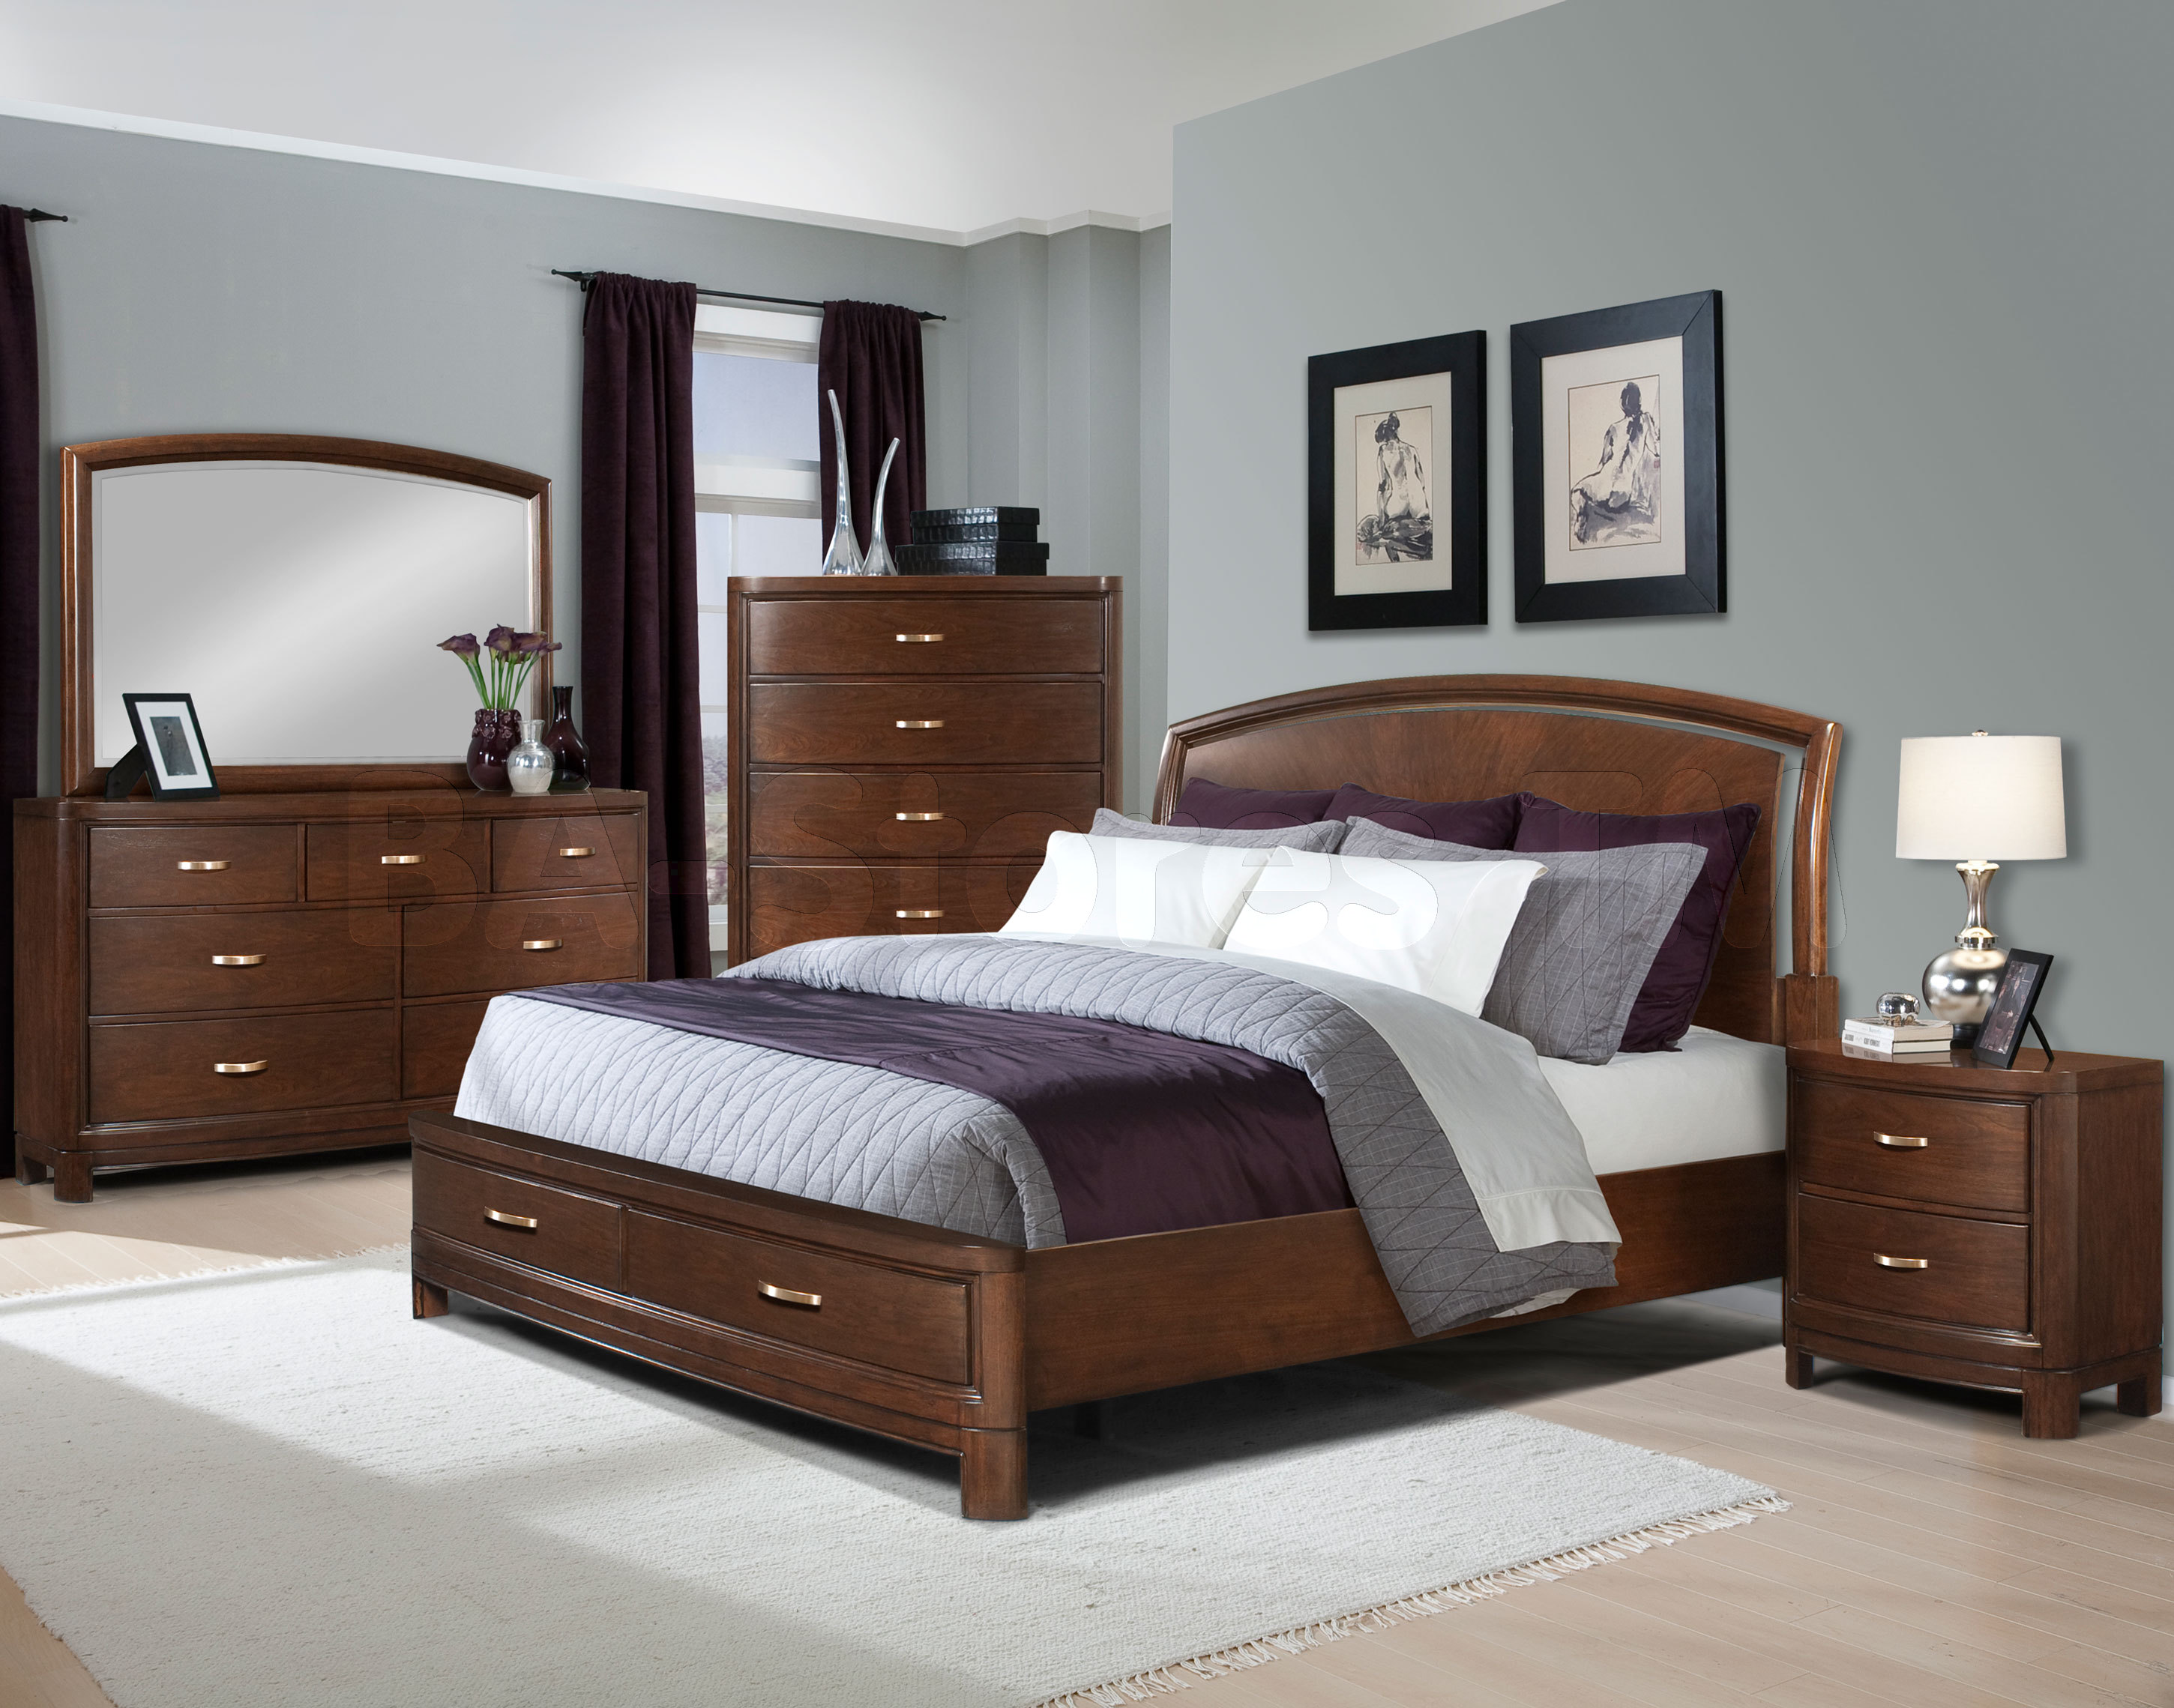 bedroom ideas brown furniture photo - 1